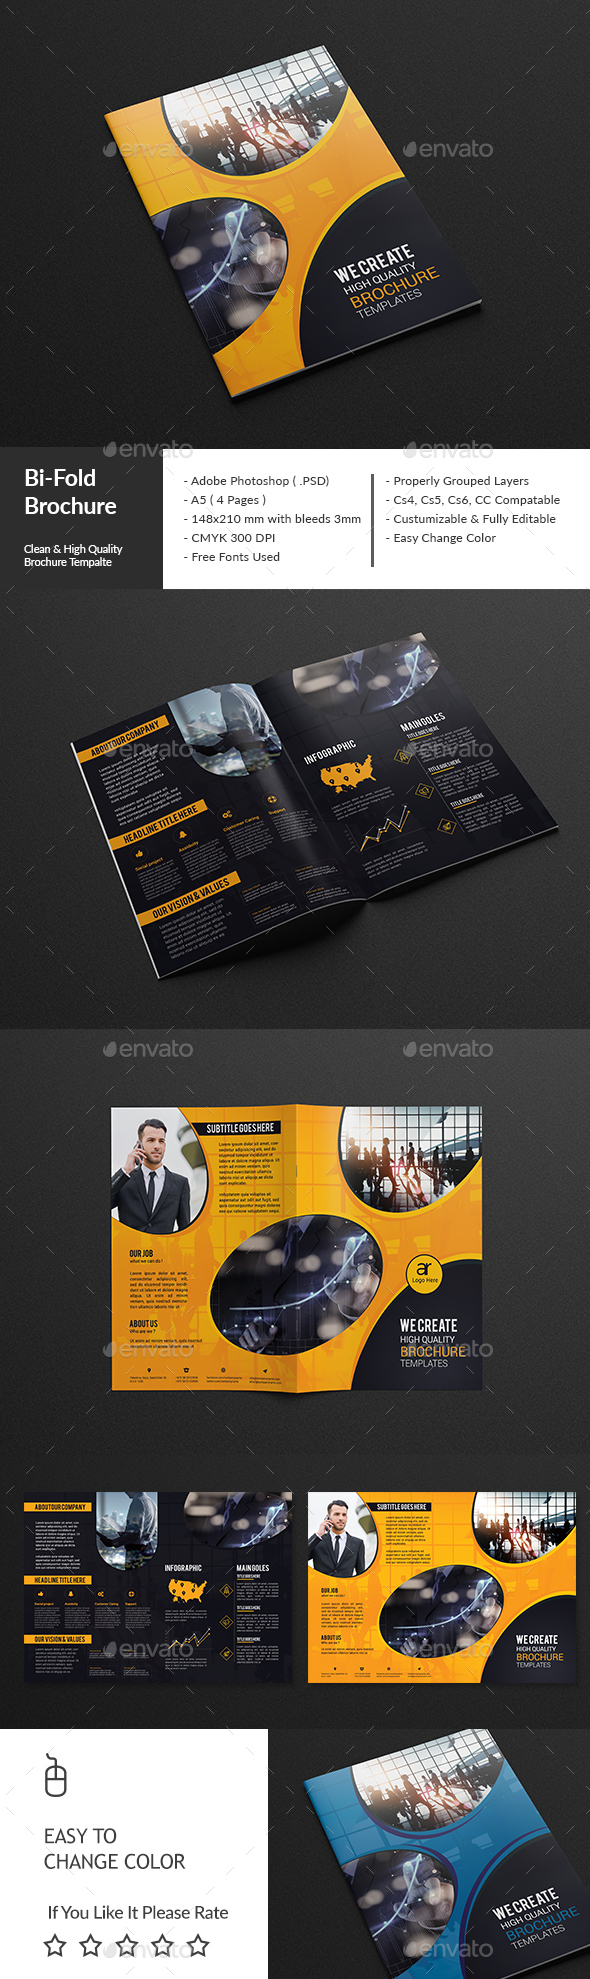 A5 Flyer Photoshop Template Ibovnathandedecker